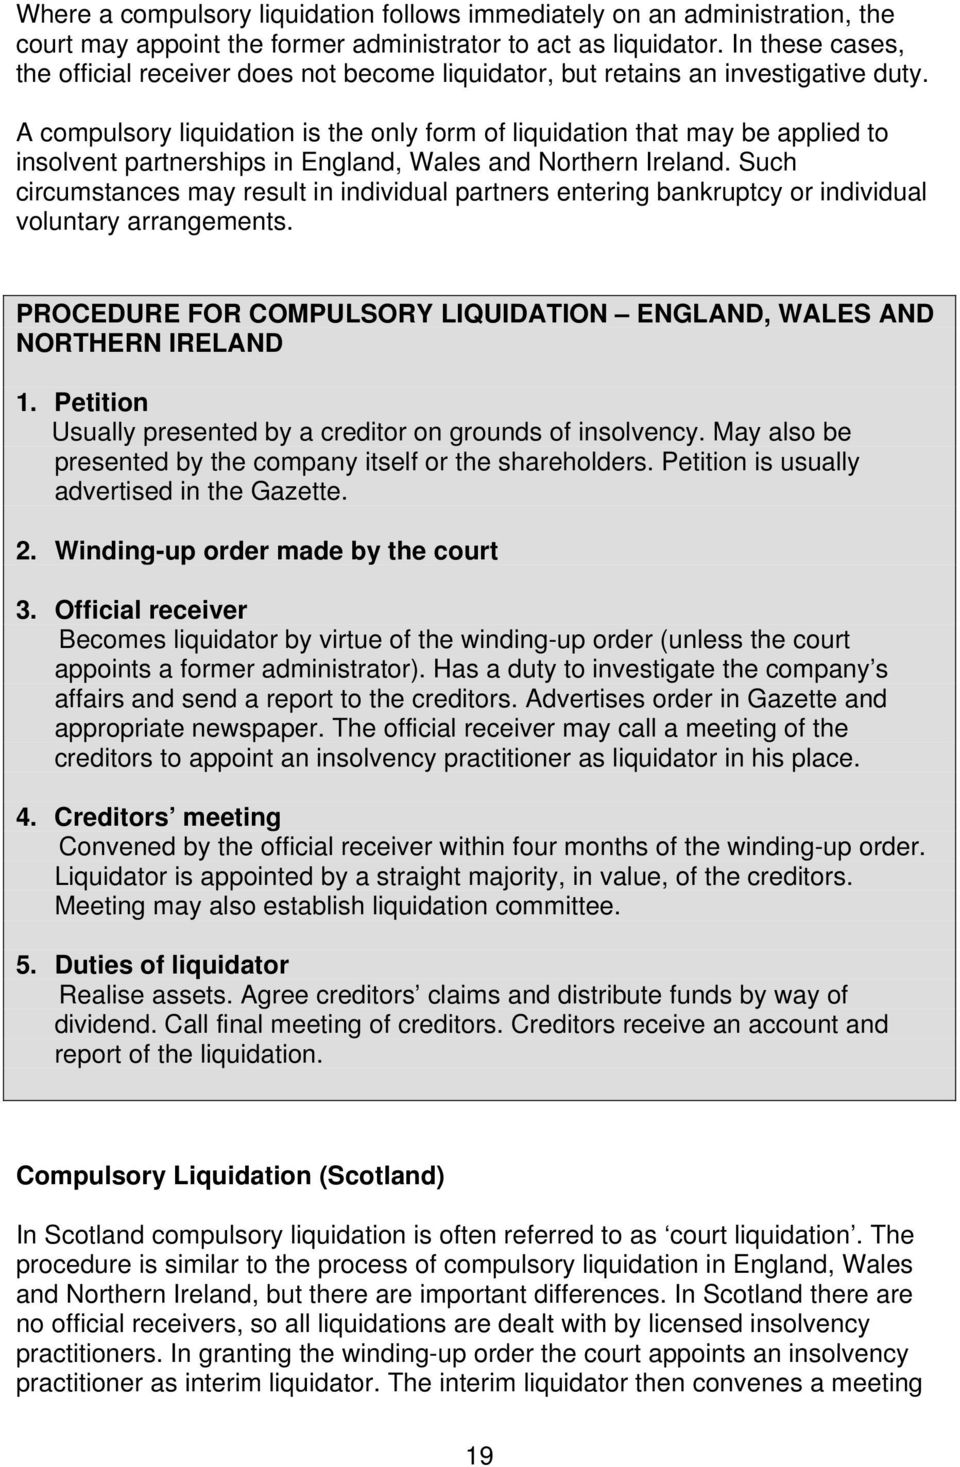 A compulsory liquidation is the only form of liquidation that may be applied to insolvent partnerships in England, Wales and Northern Ireland.